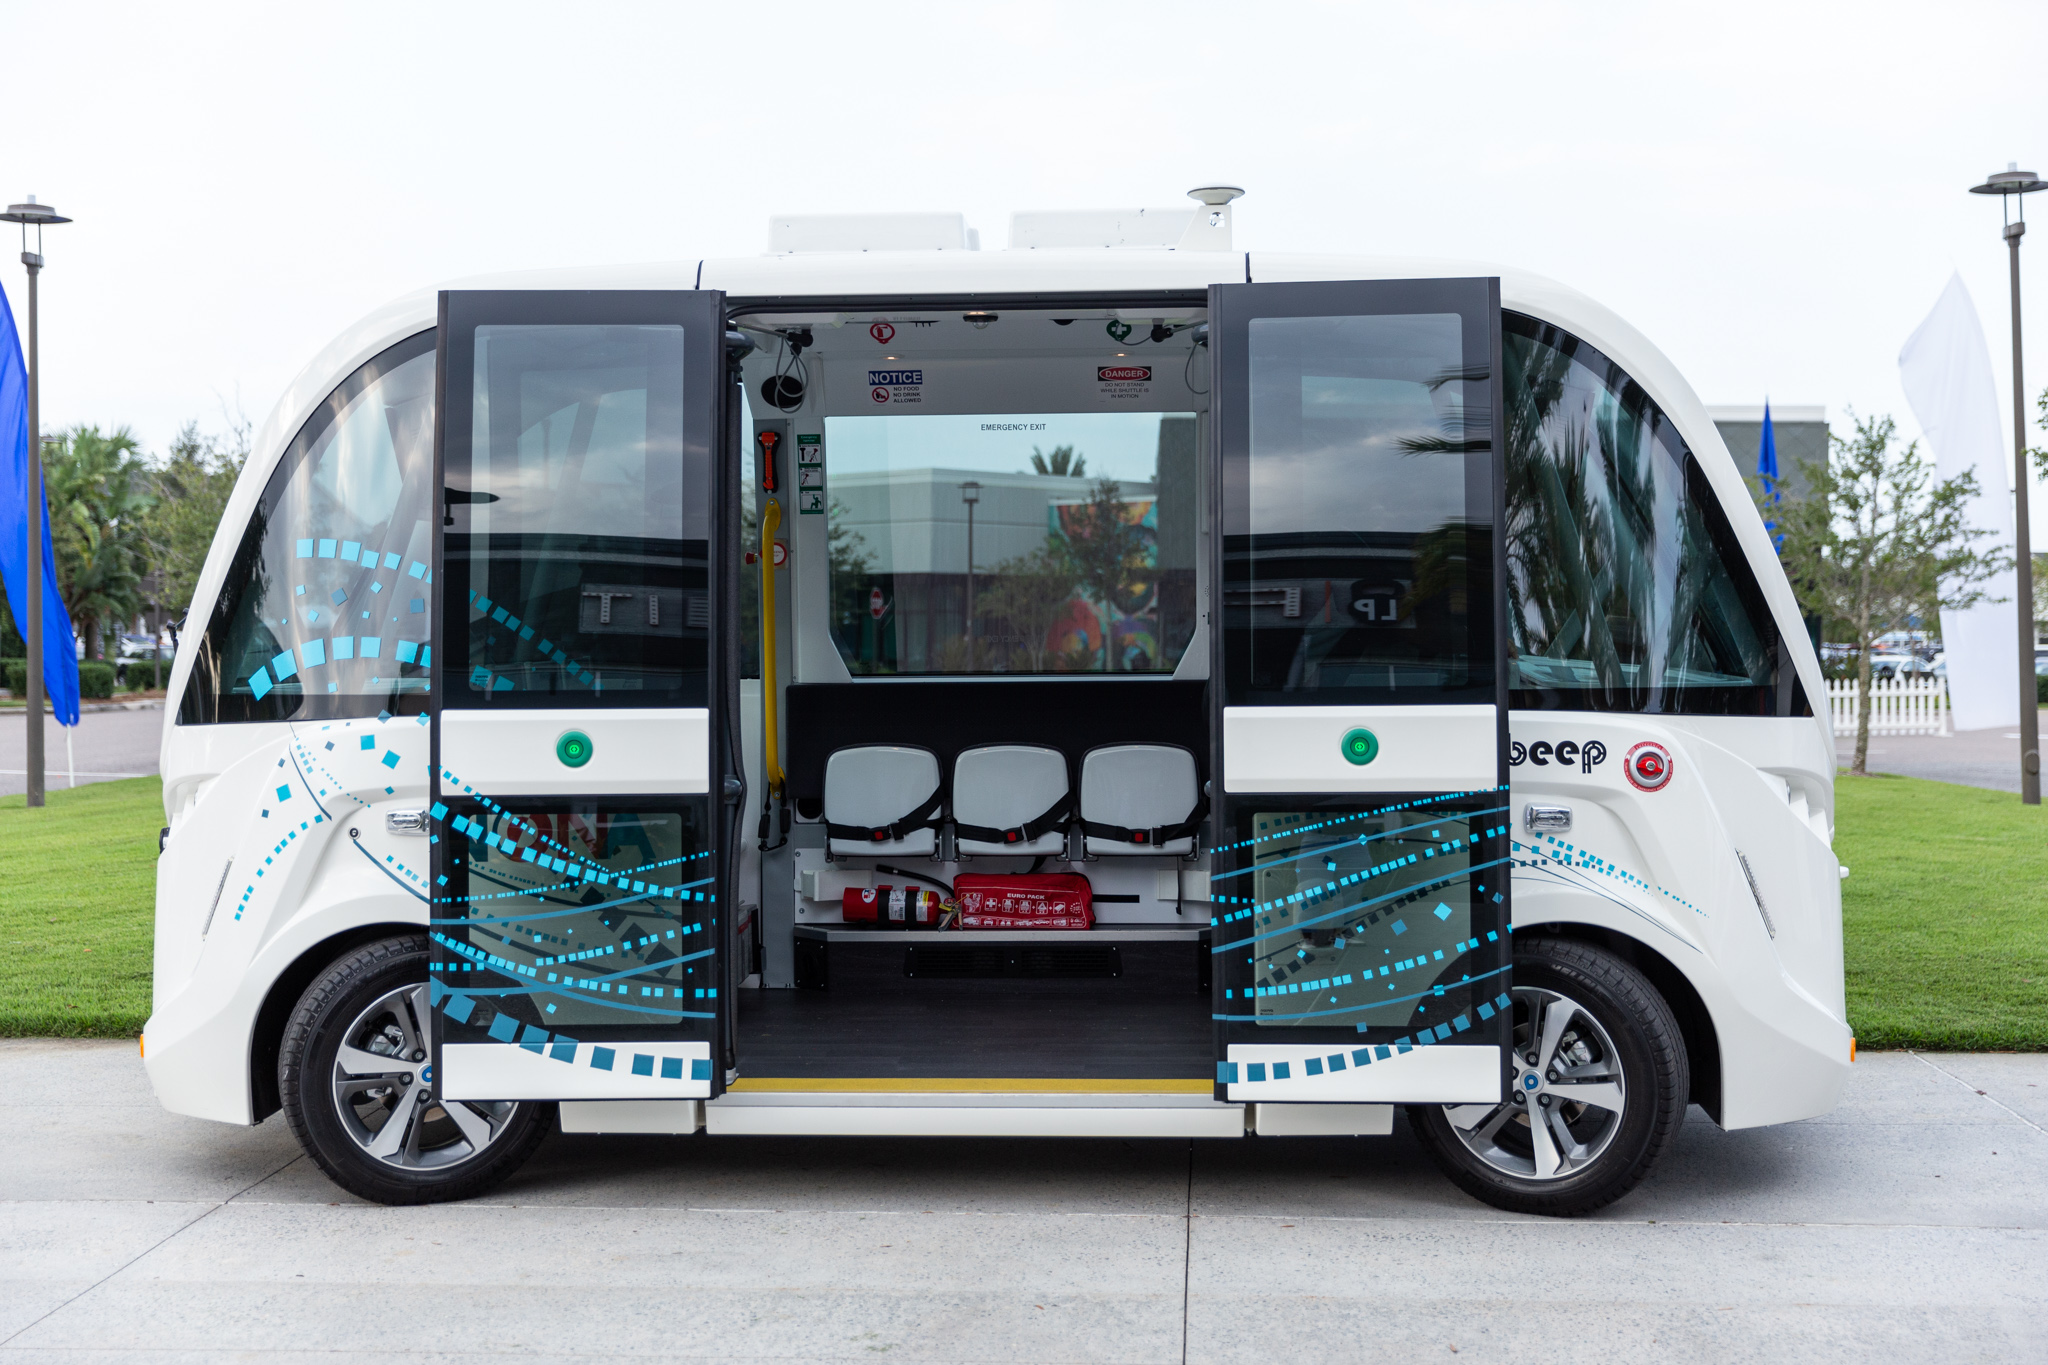 Beep's autonomous vehicle parked with its doors open